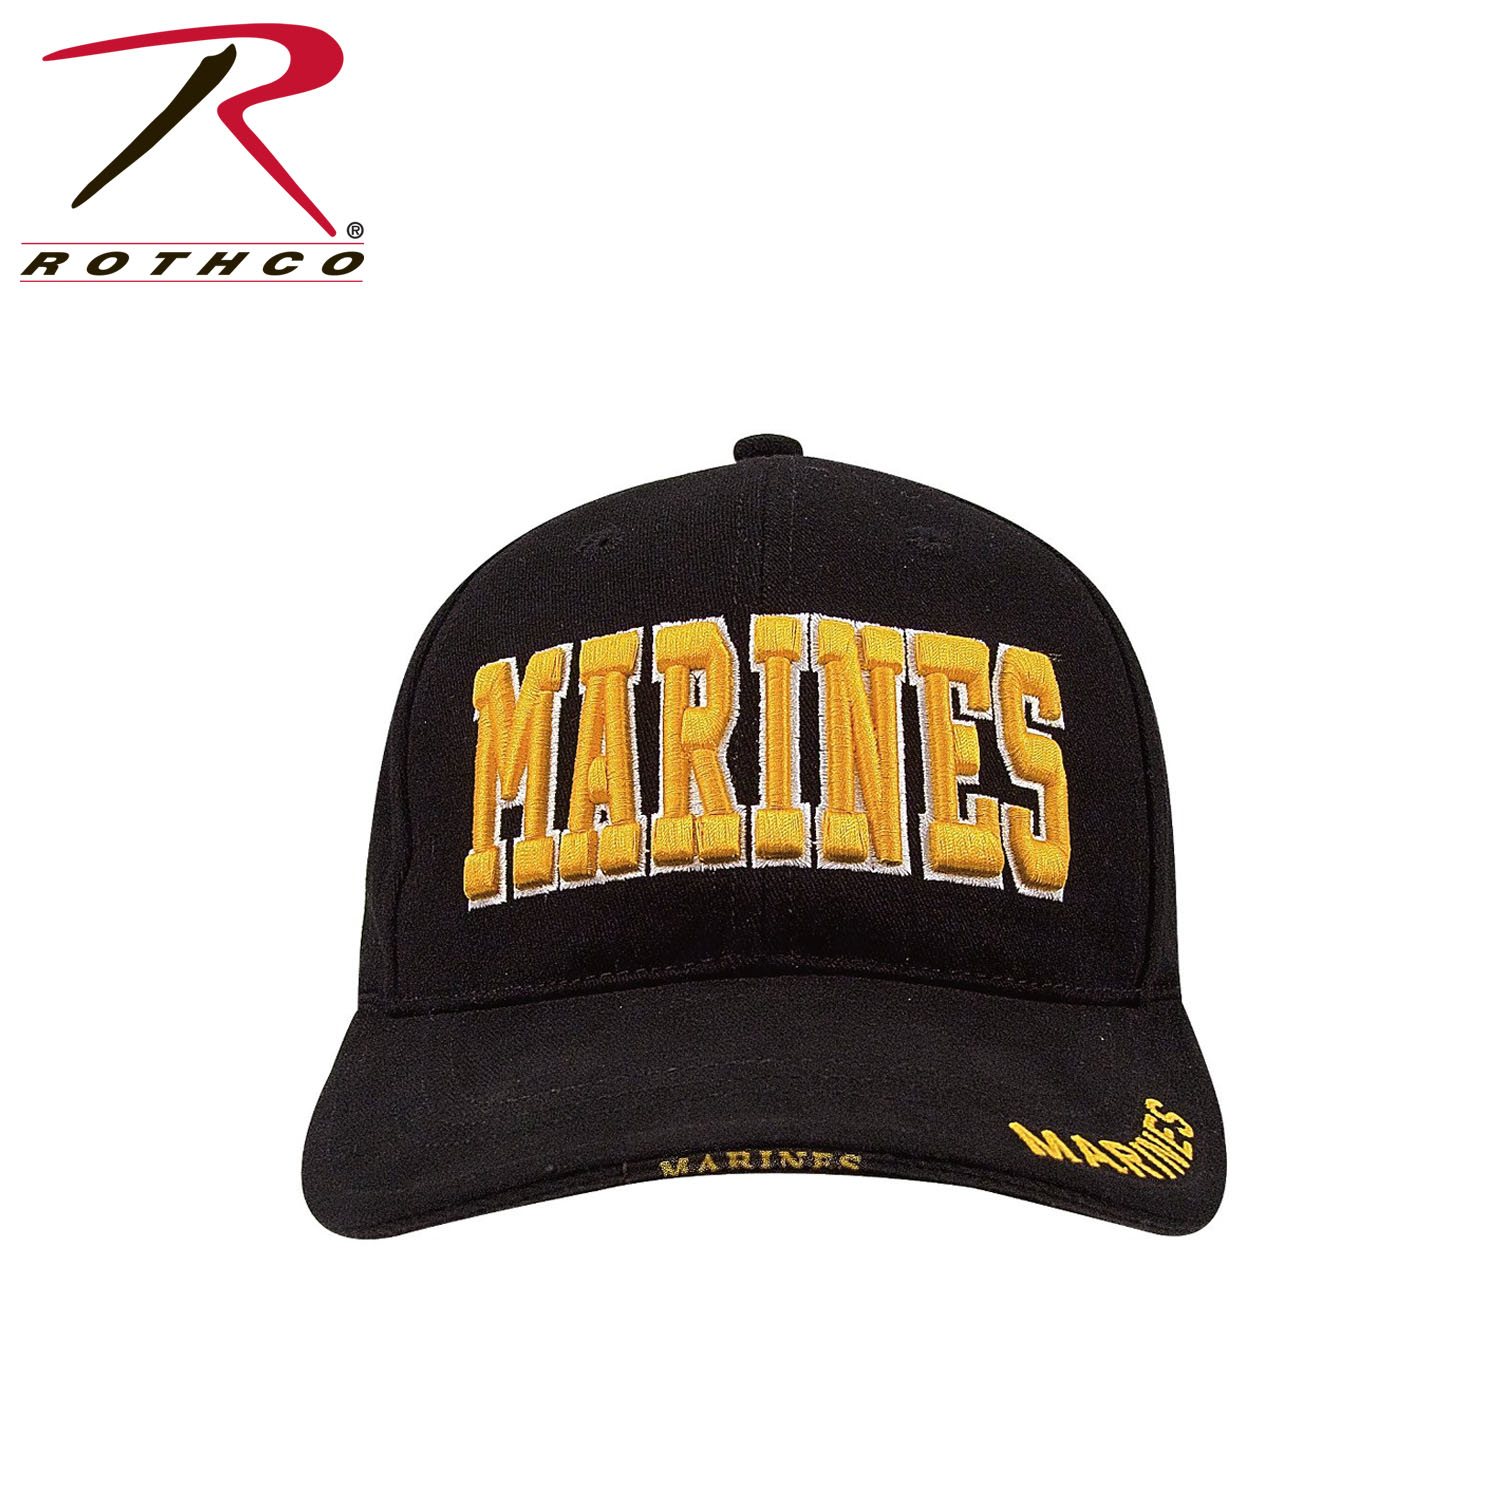 Cap-Black with Gold Marines